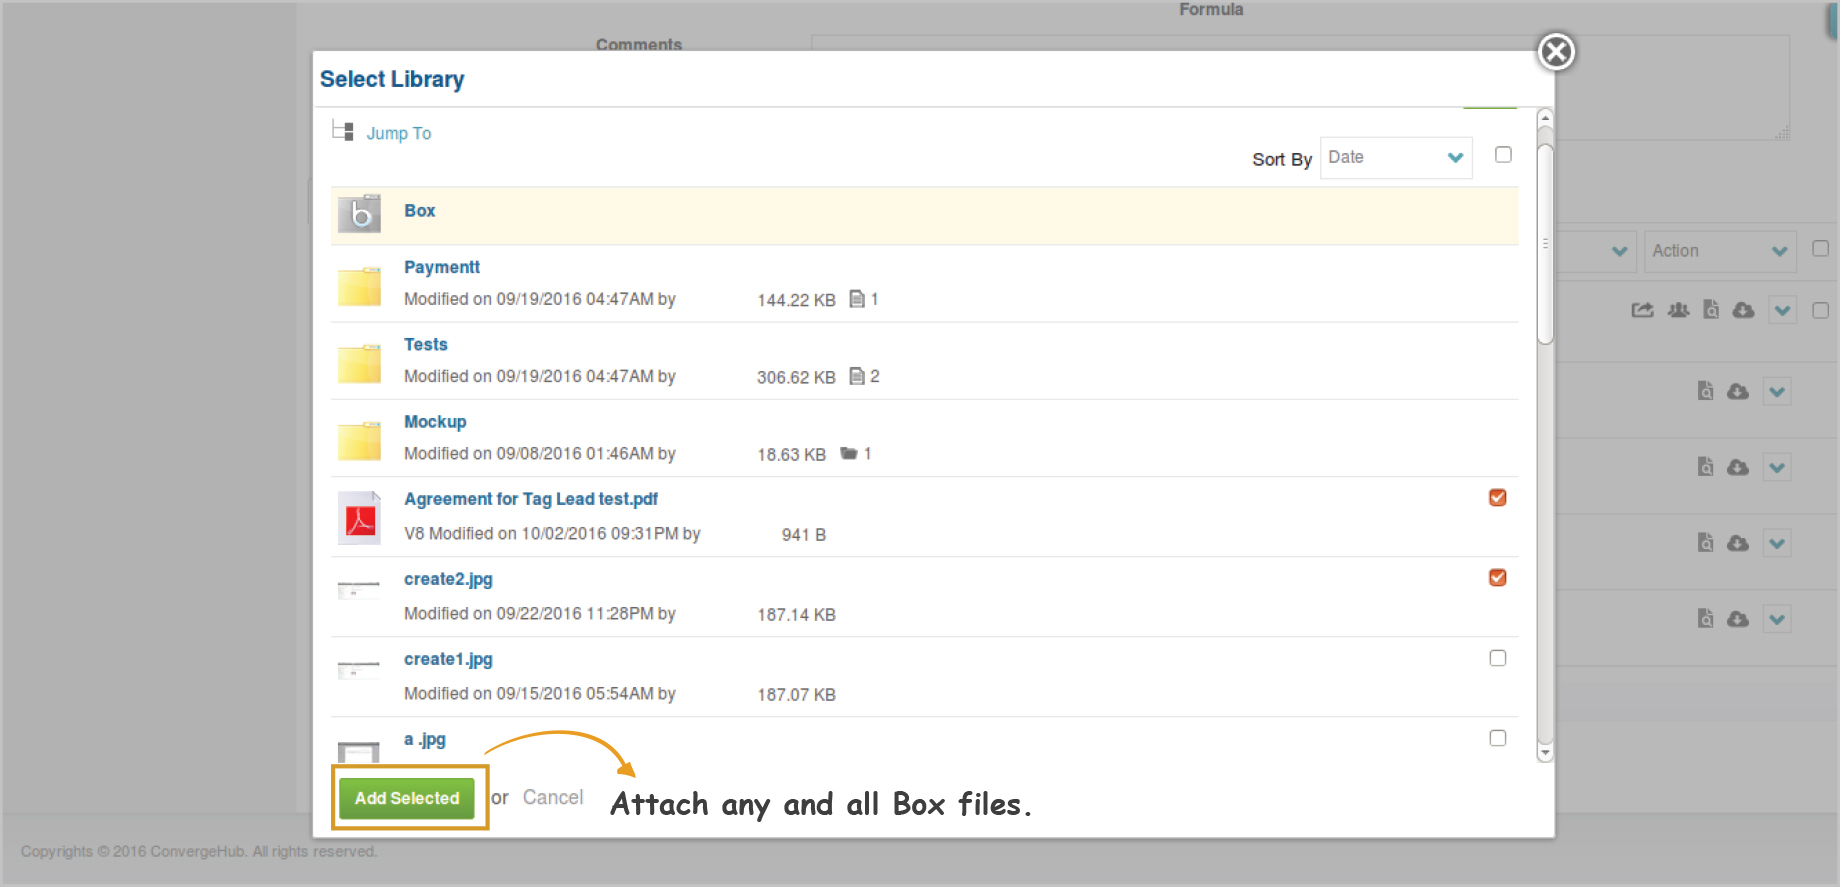 Box files and documents to contacts, sales leads, projects, support cases, and more in ConvergeHub